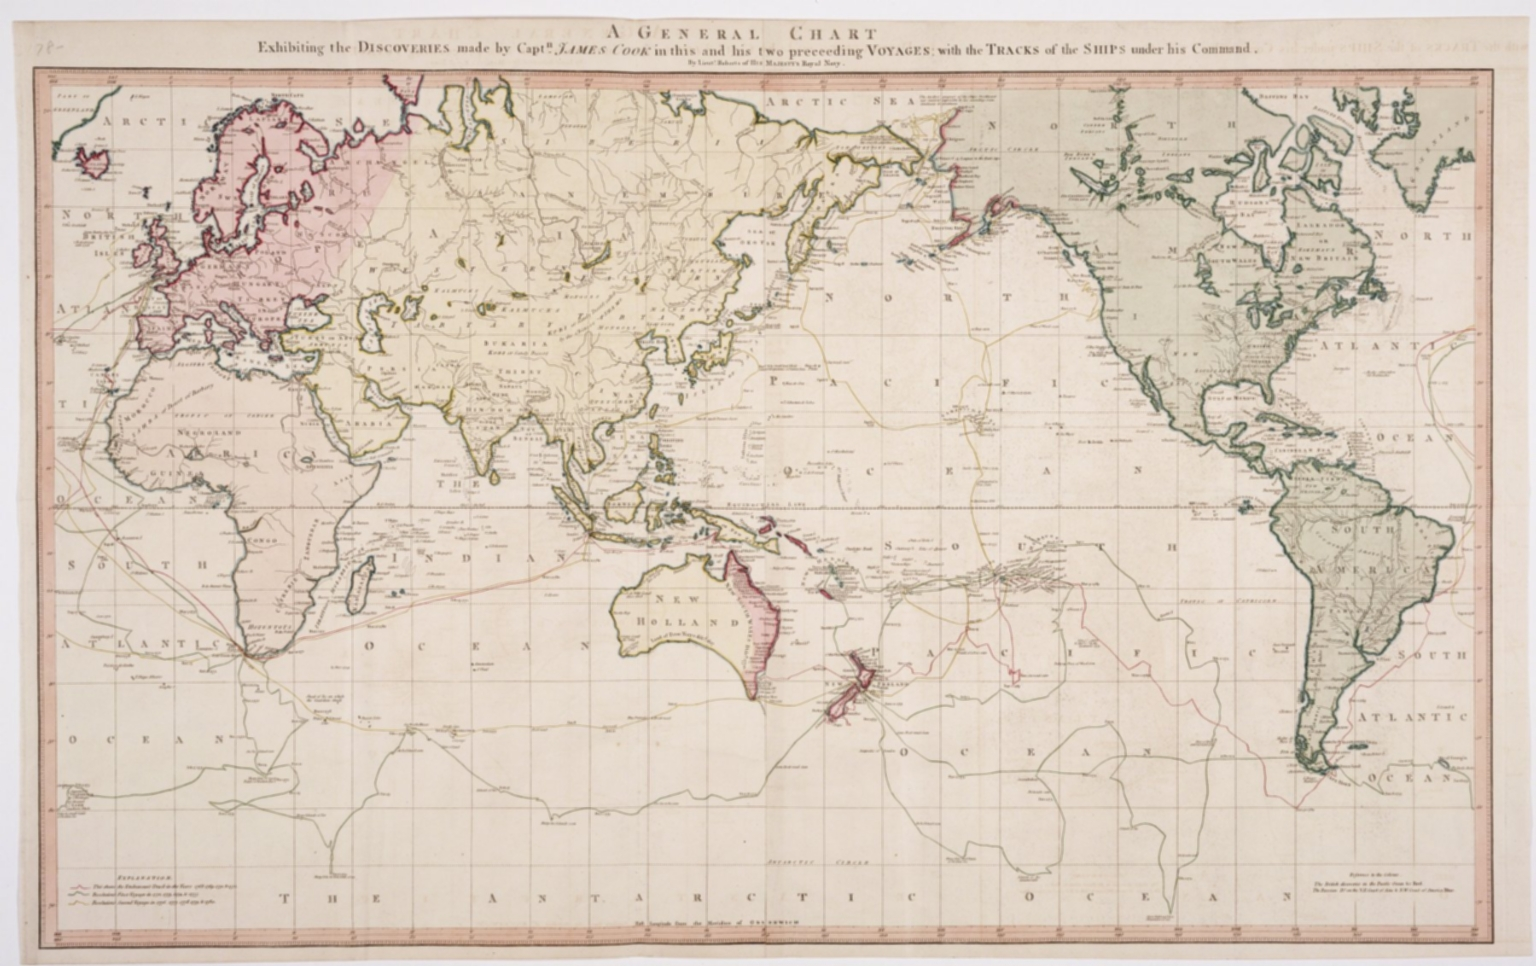 General Chart exhibiting the Discoveries made by Captain James Cook in this and his Two Proceeding Voyages, with the tracks of the Ships under his command, by Lieutenant Roberts of His Majesty's Royal Navy.